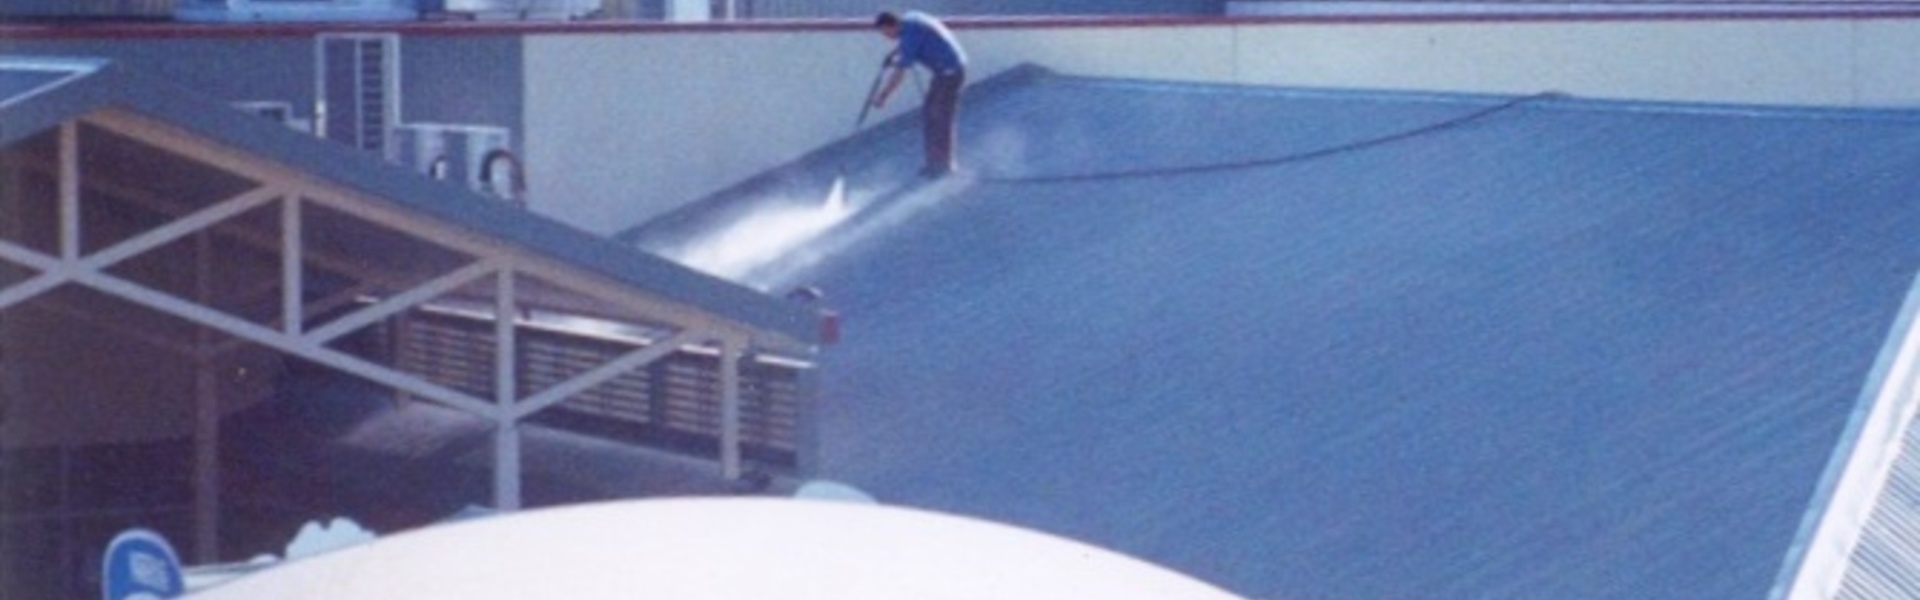 Metal_Roof_Cleaning.jpg